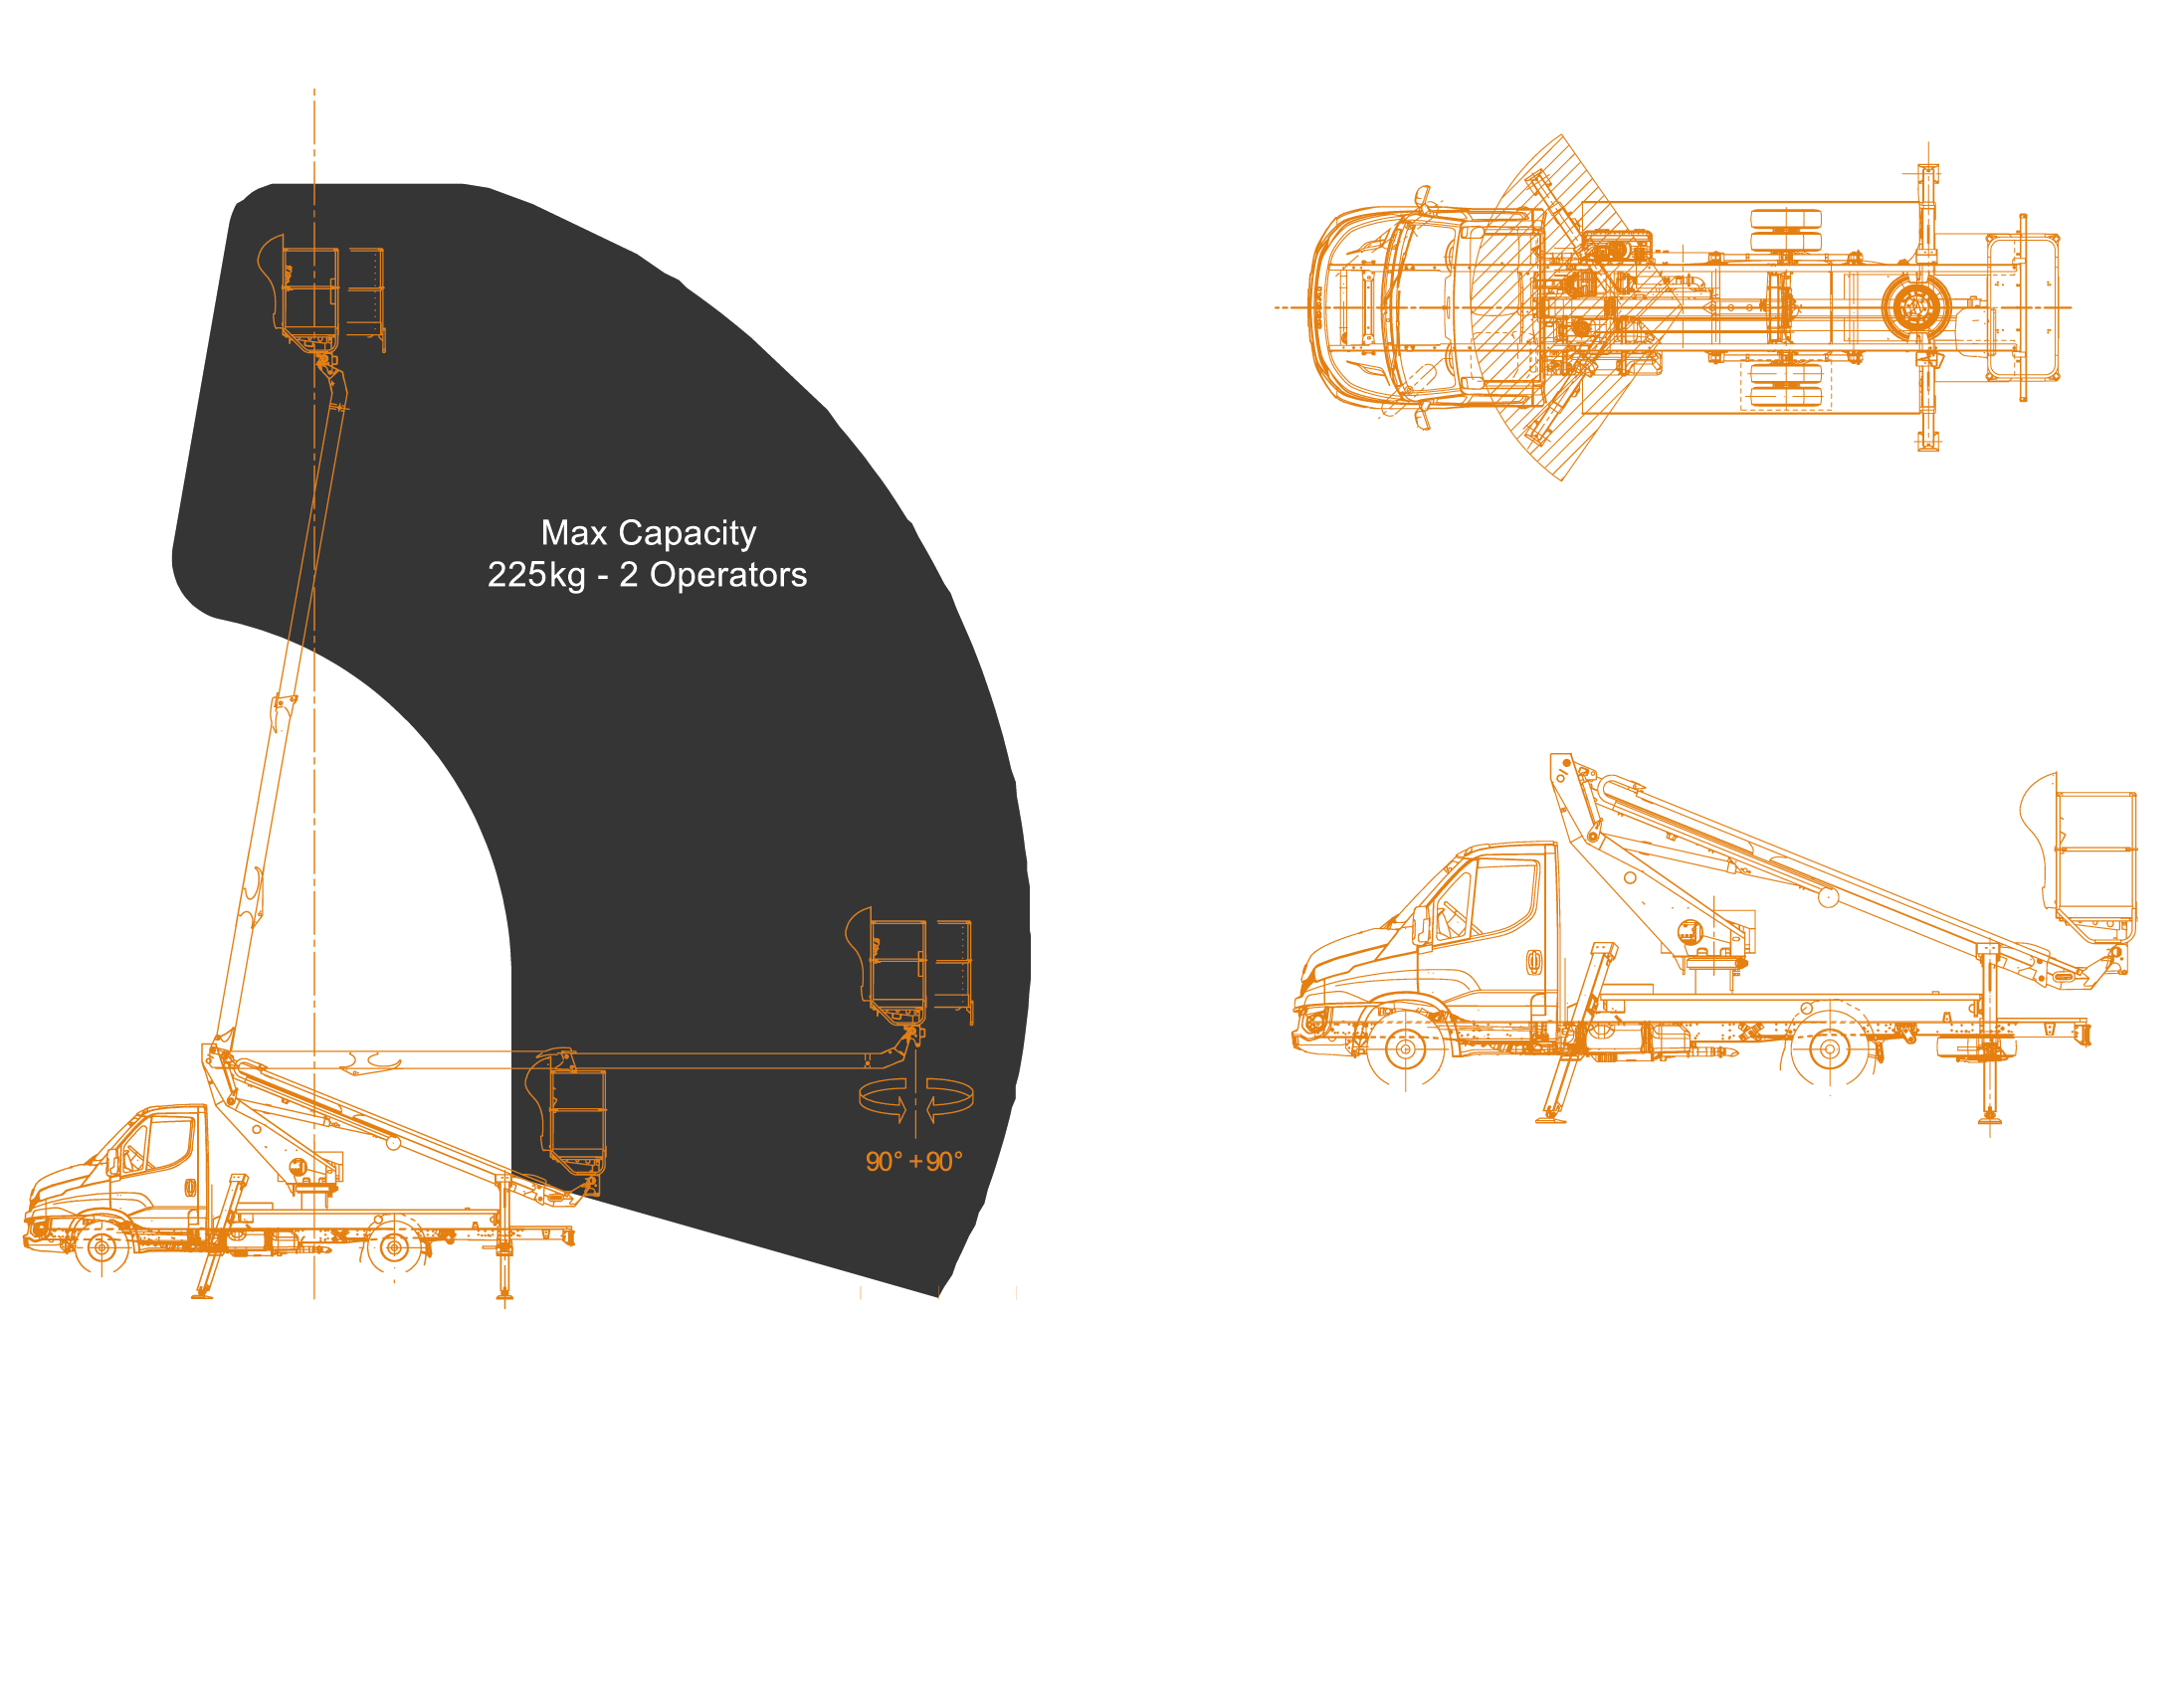 Scorpion-1490-IVECO-working-envelope and dimensions